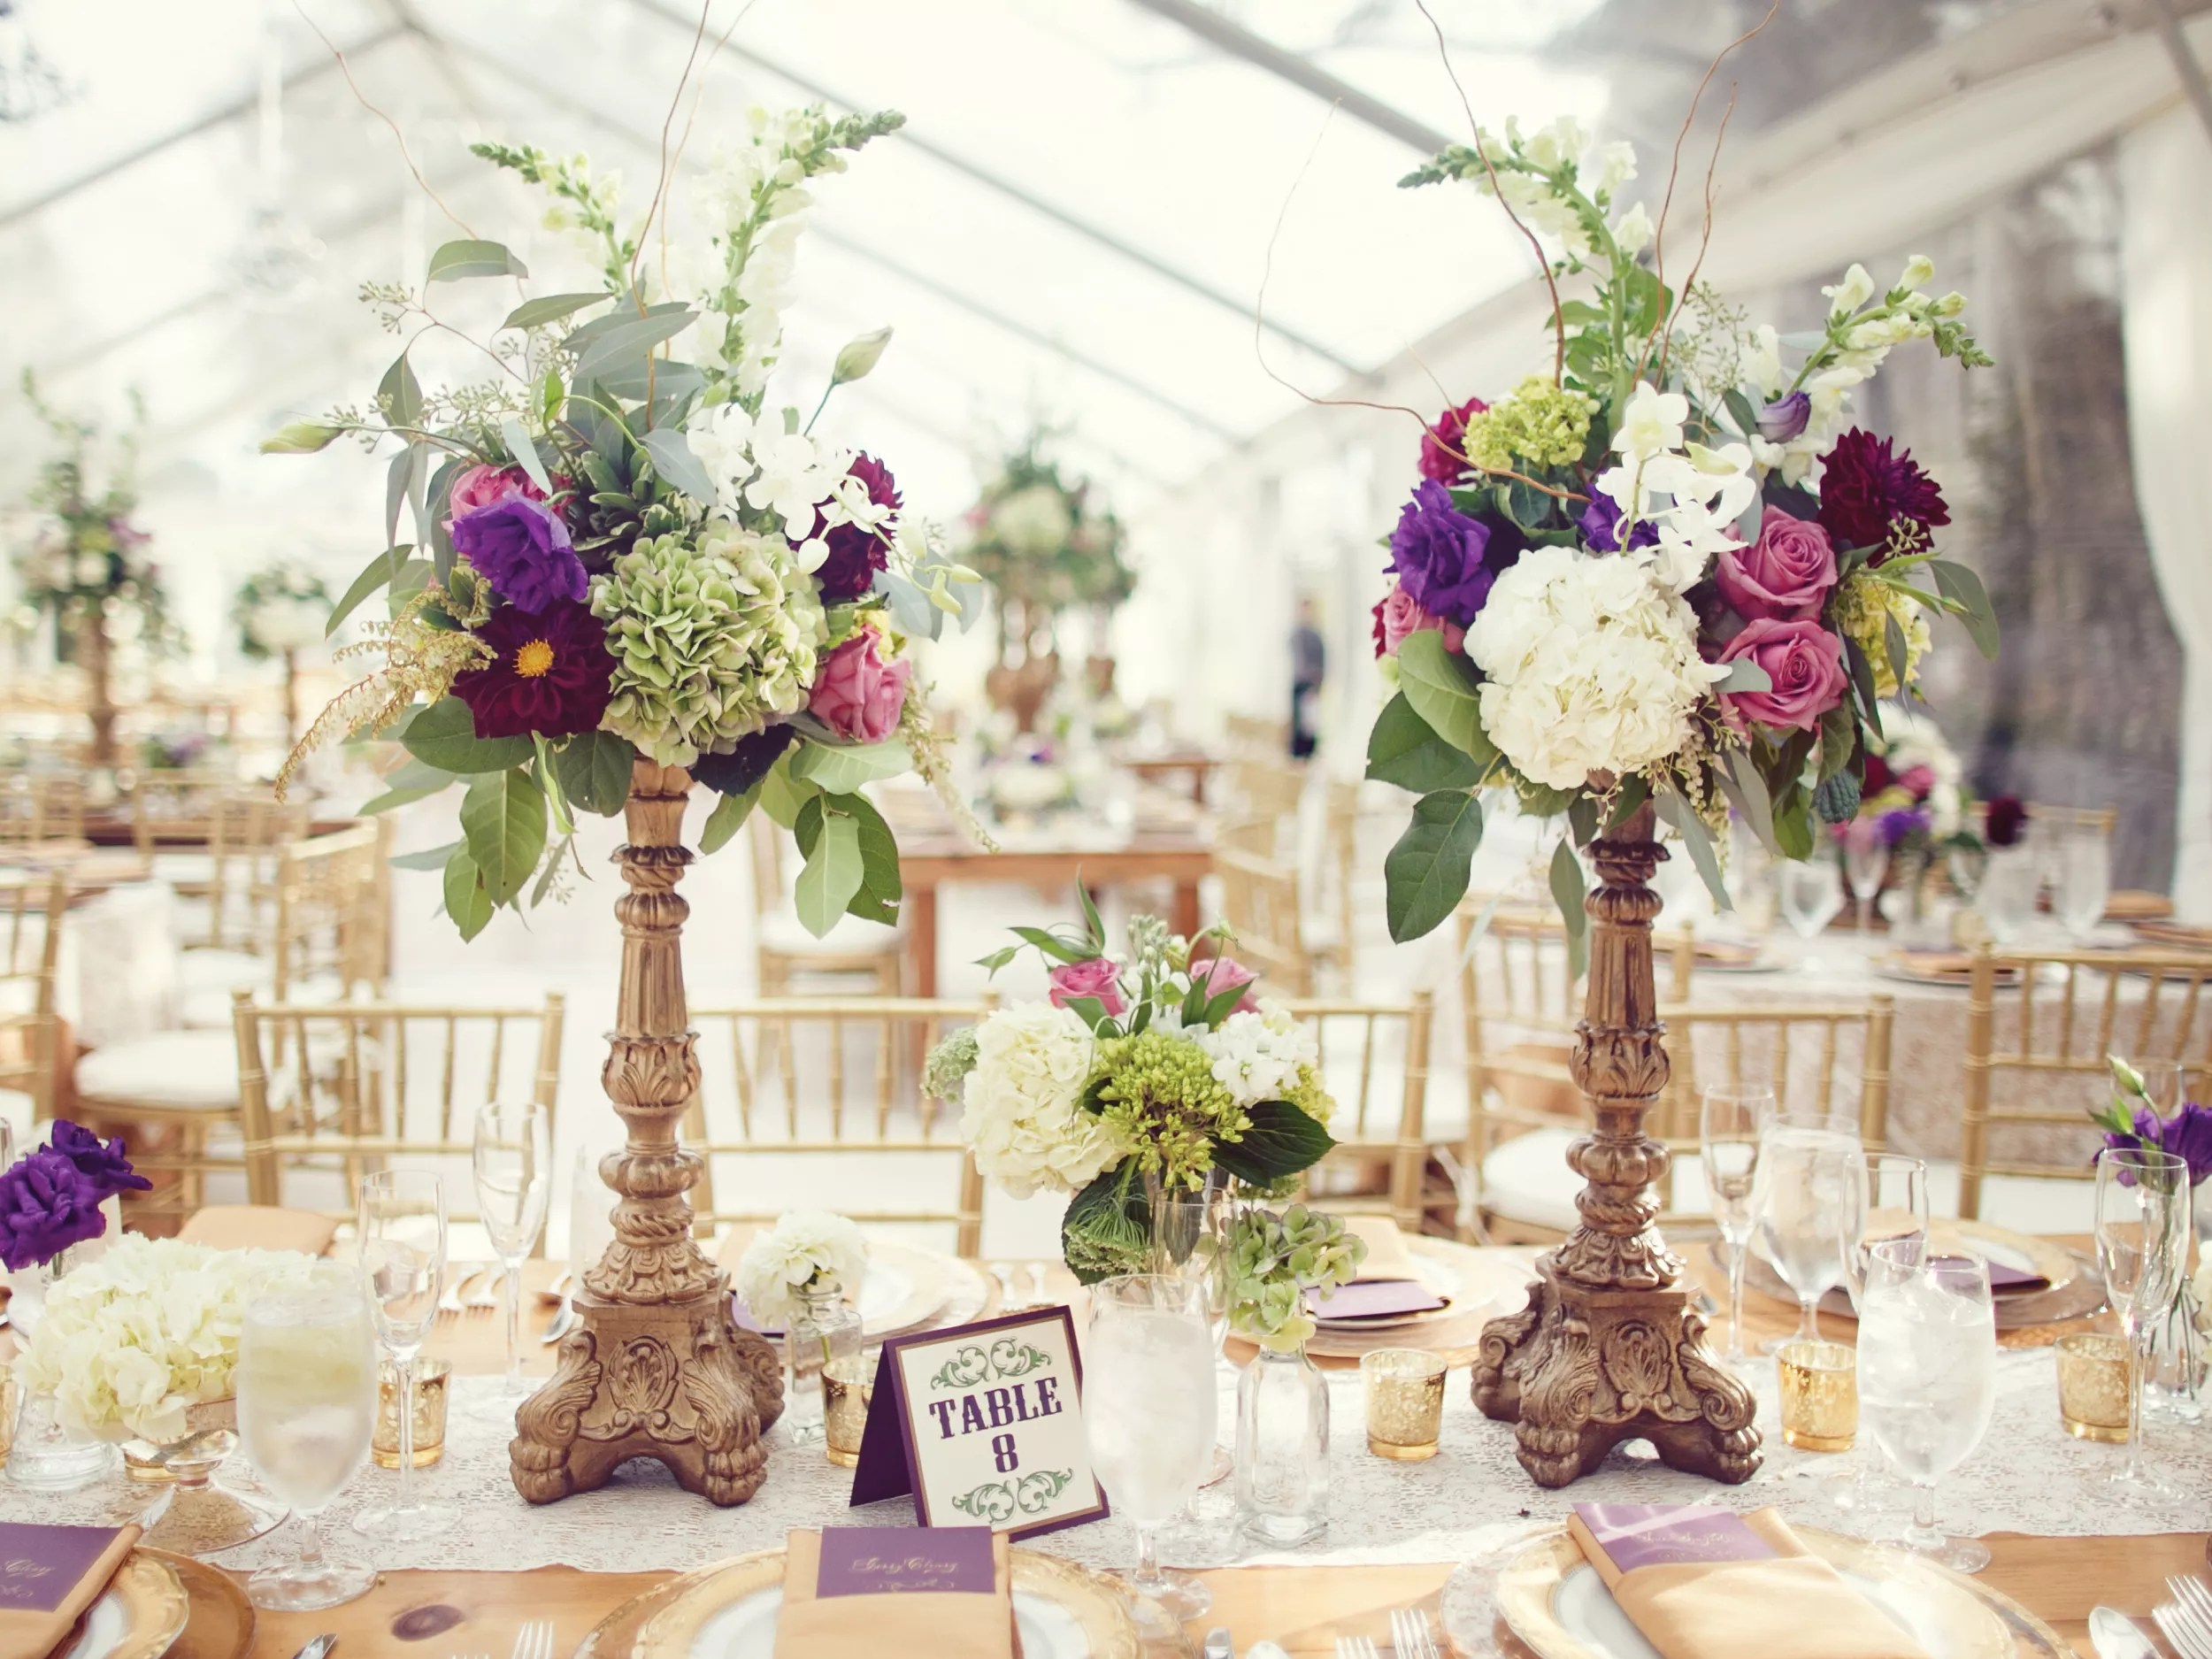 How To Transport Tall Centerpieces